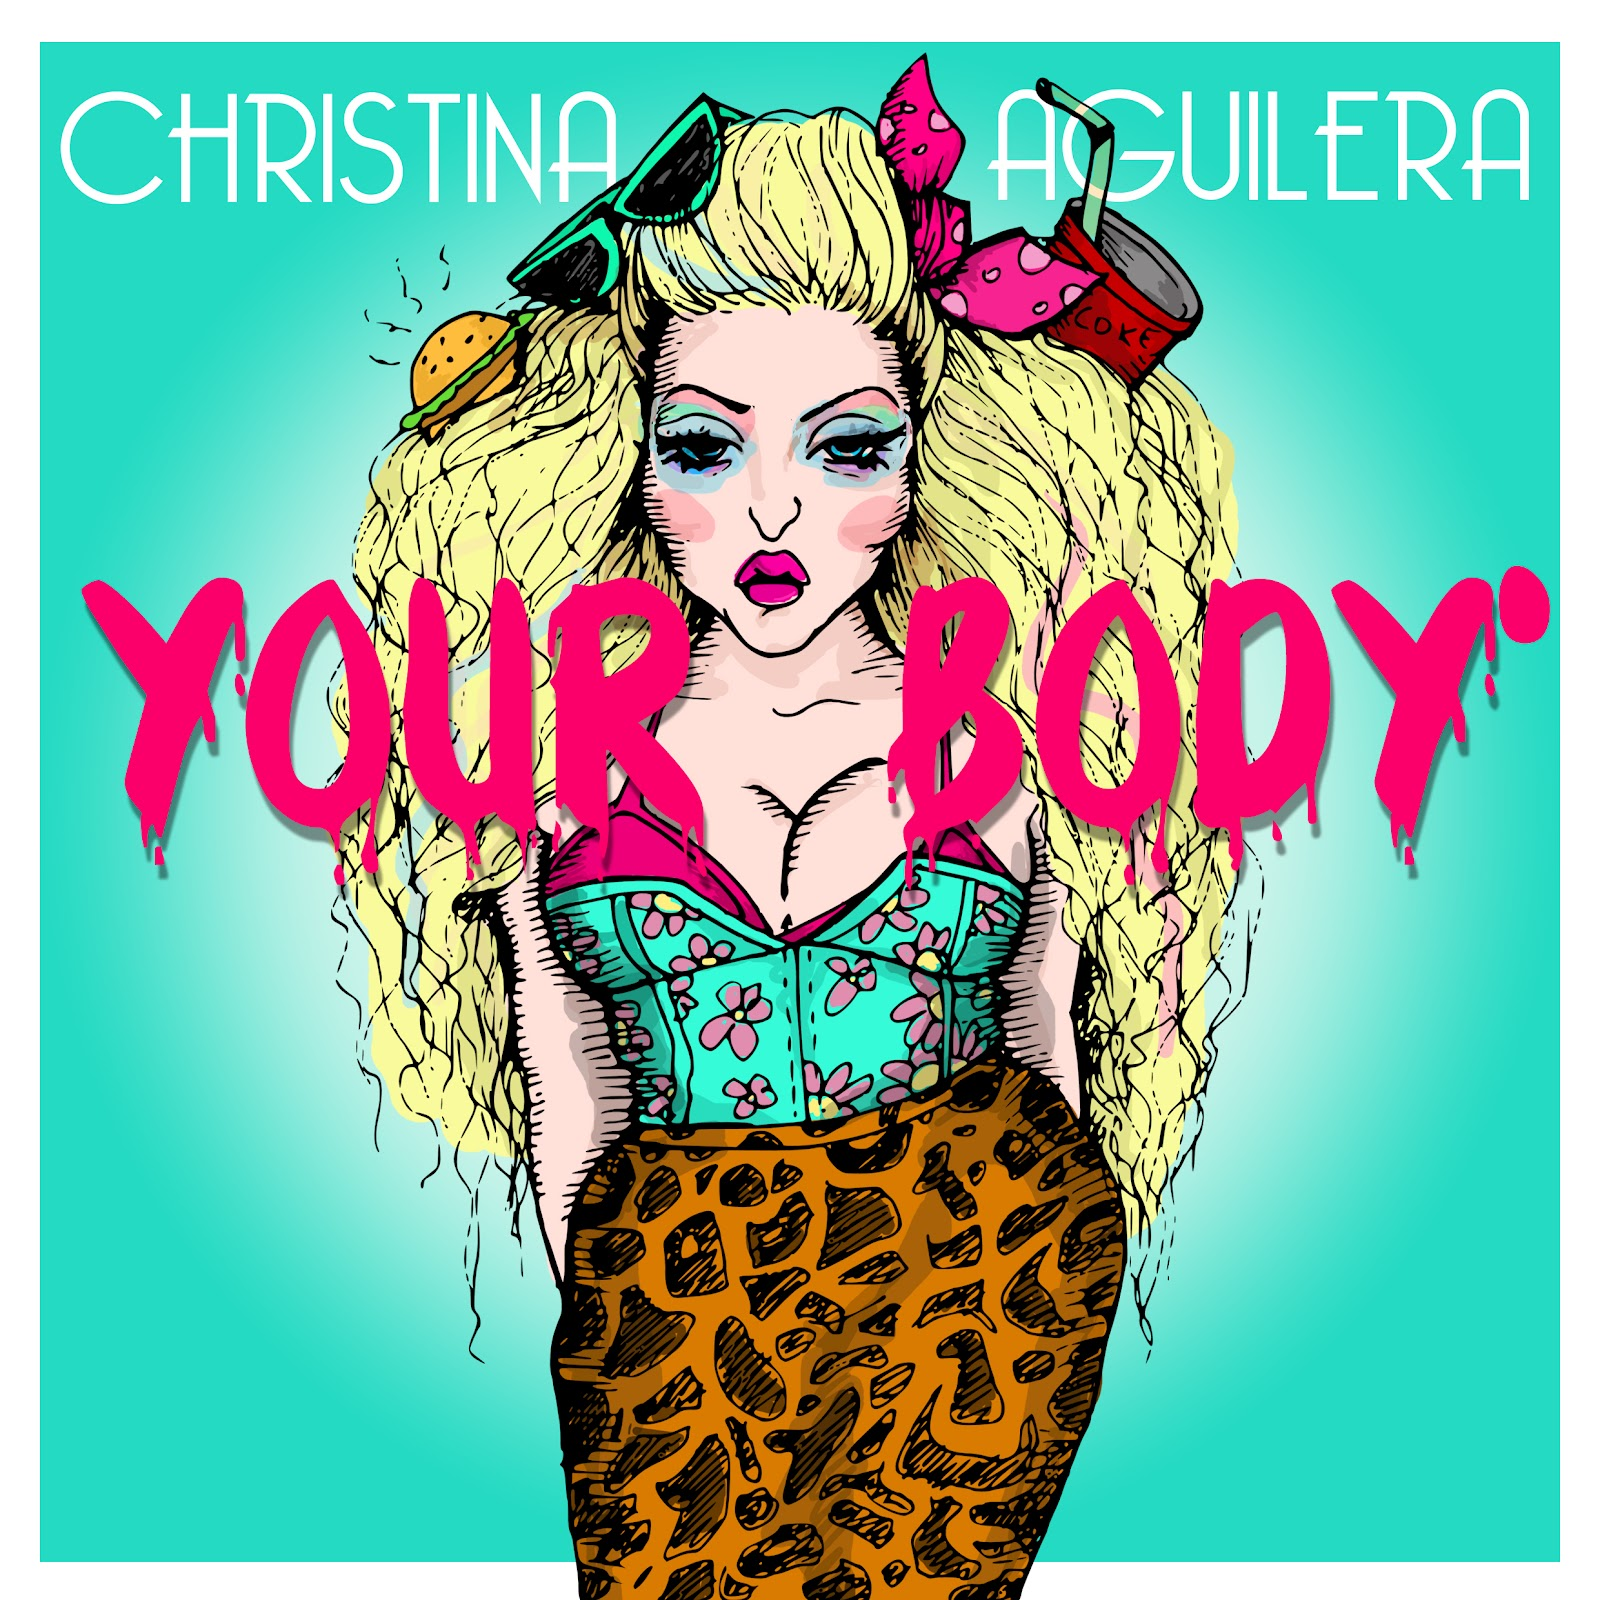 Christina aguilera your body single cover artwork